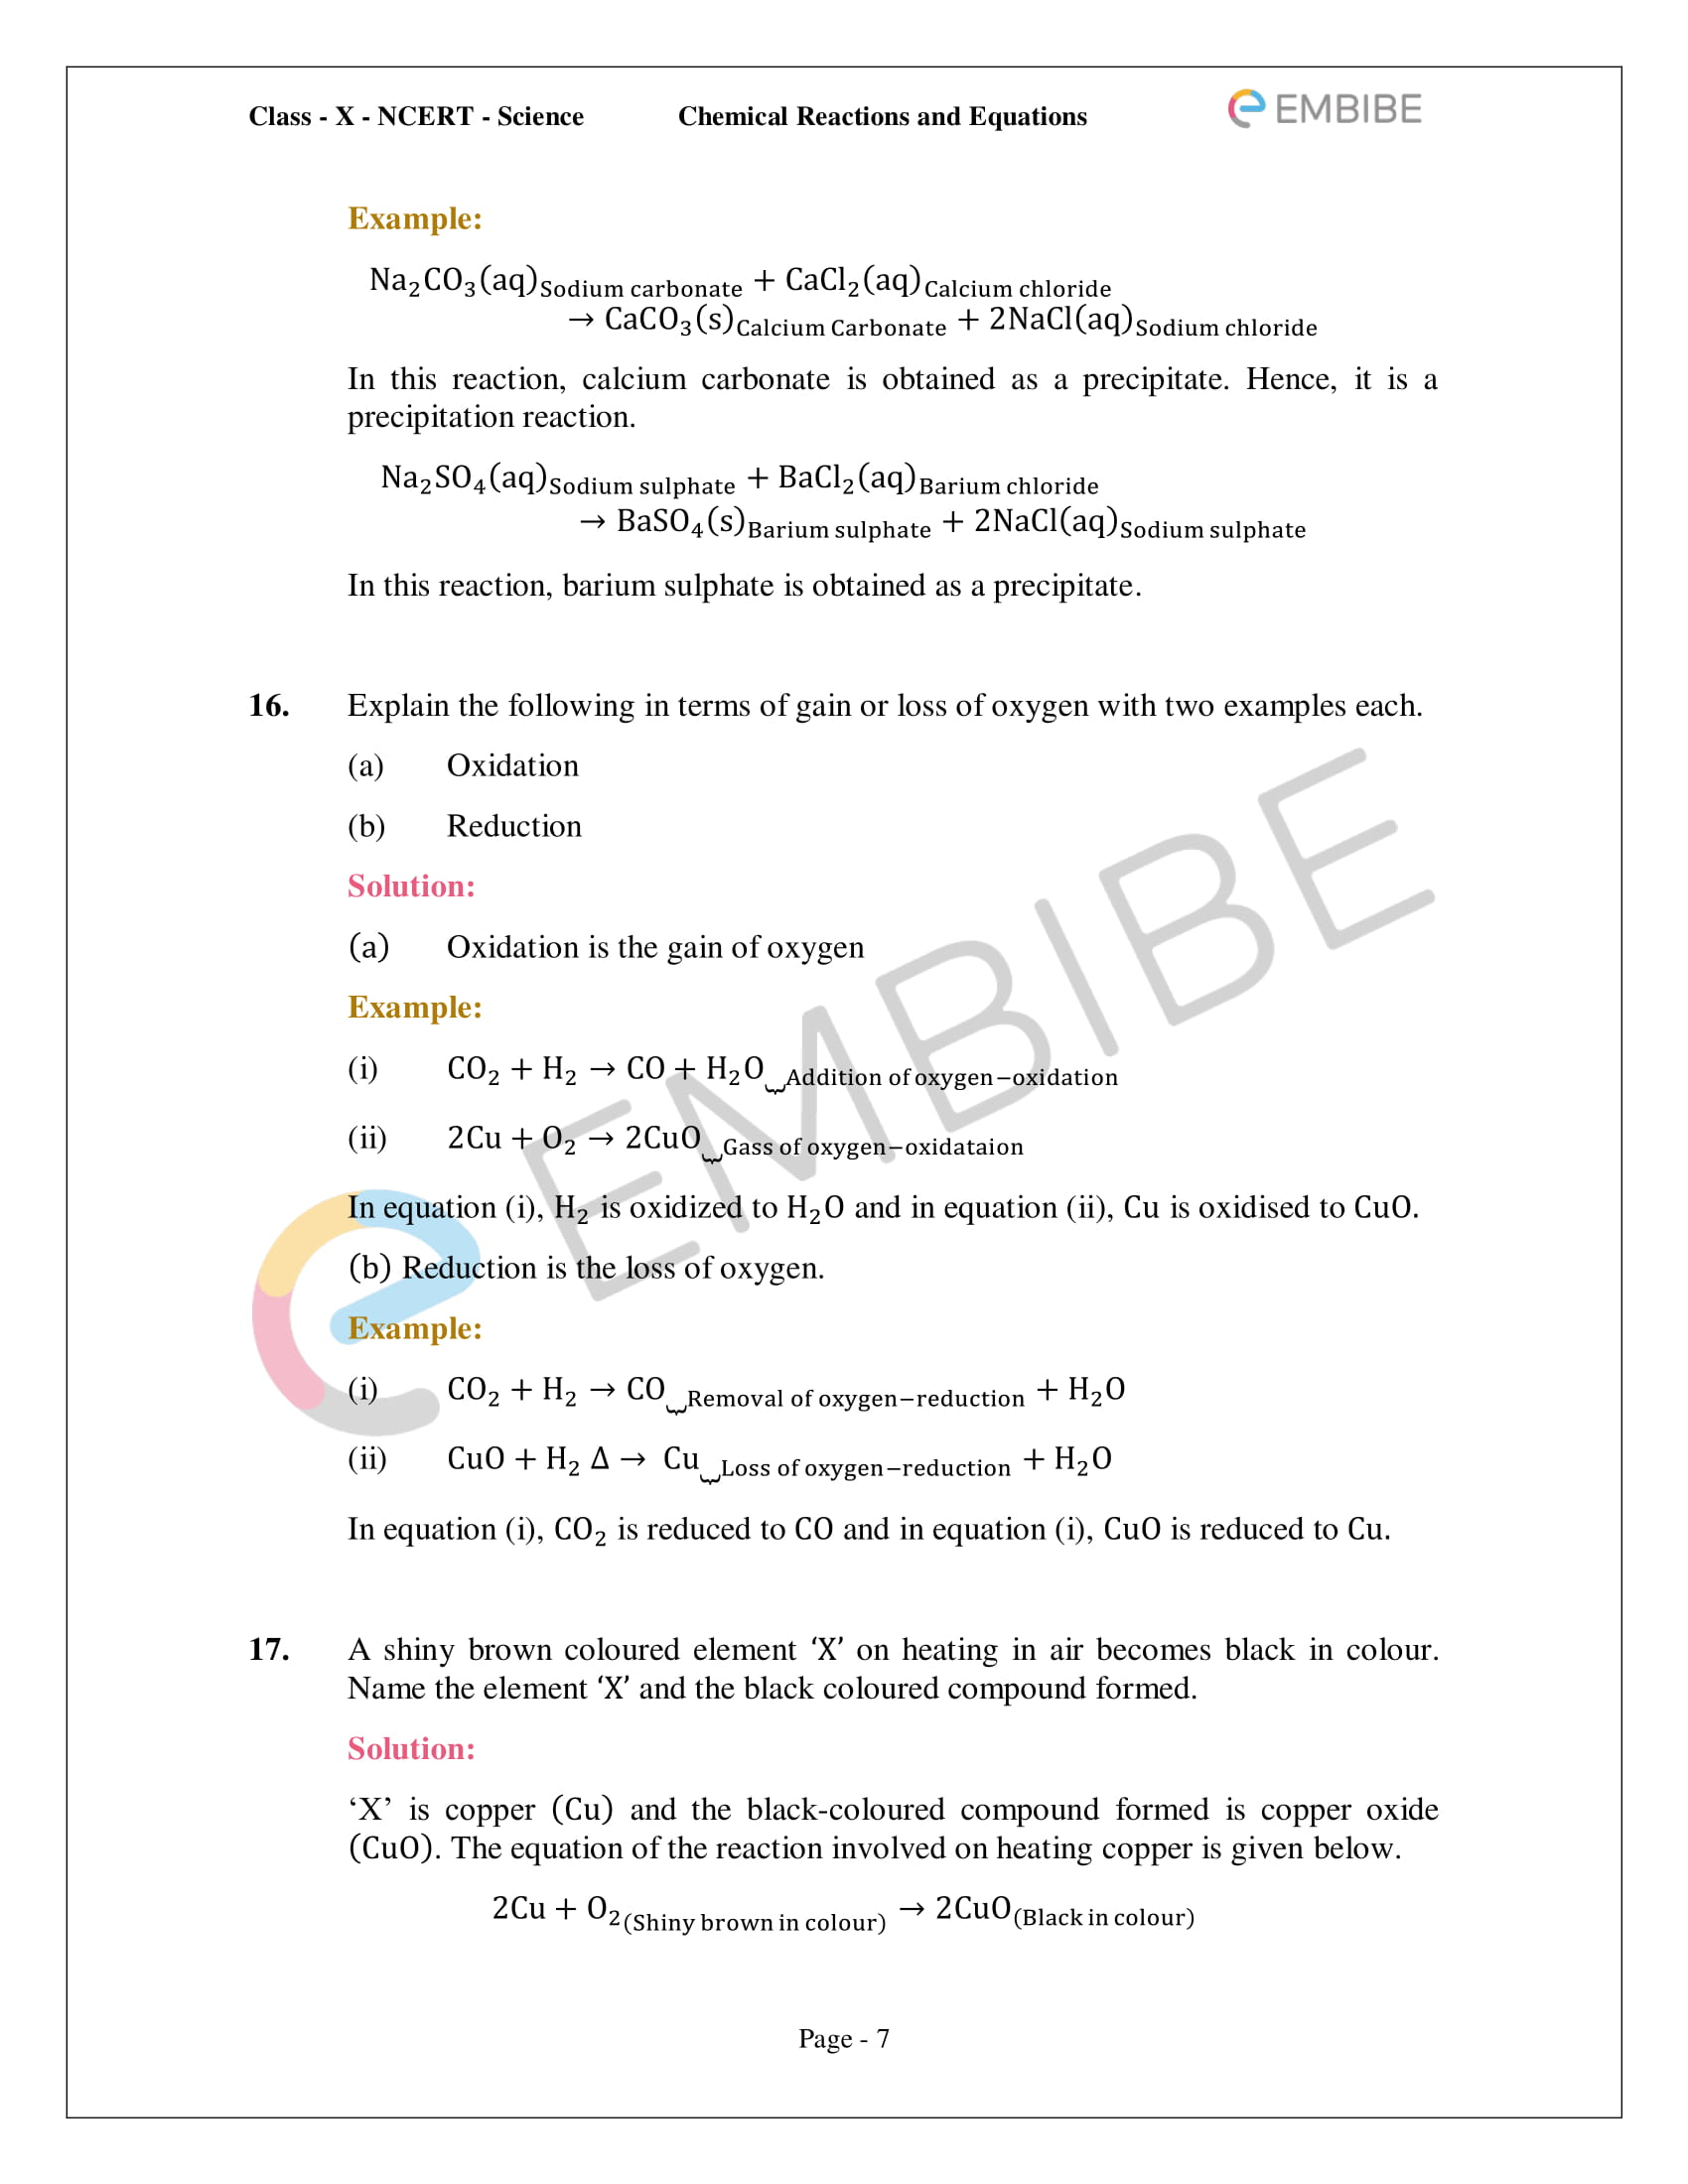 NCERT Solutions Class 10 Science Chapter 1 Chemical Reactions and Equations_questions_final _V3 (1)-07